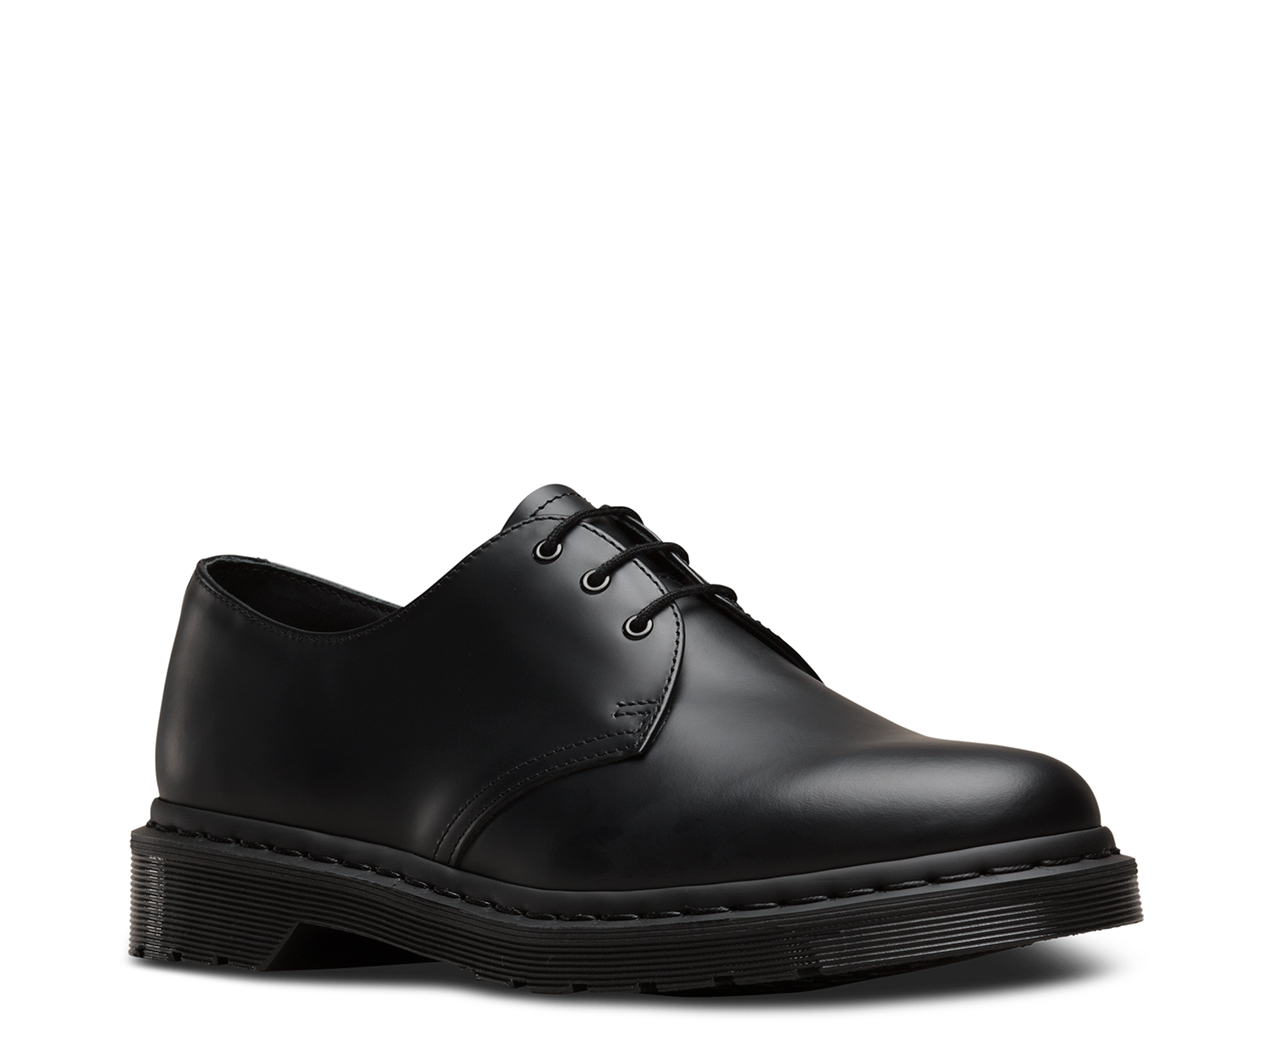 MONO 1461 | Black and White Shoes & Boots | The Official US Dr Martens Store